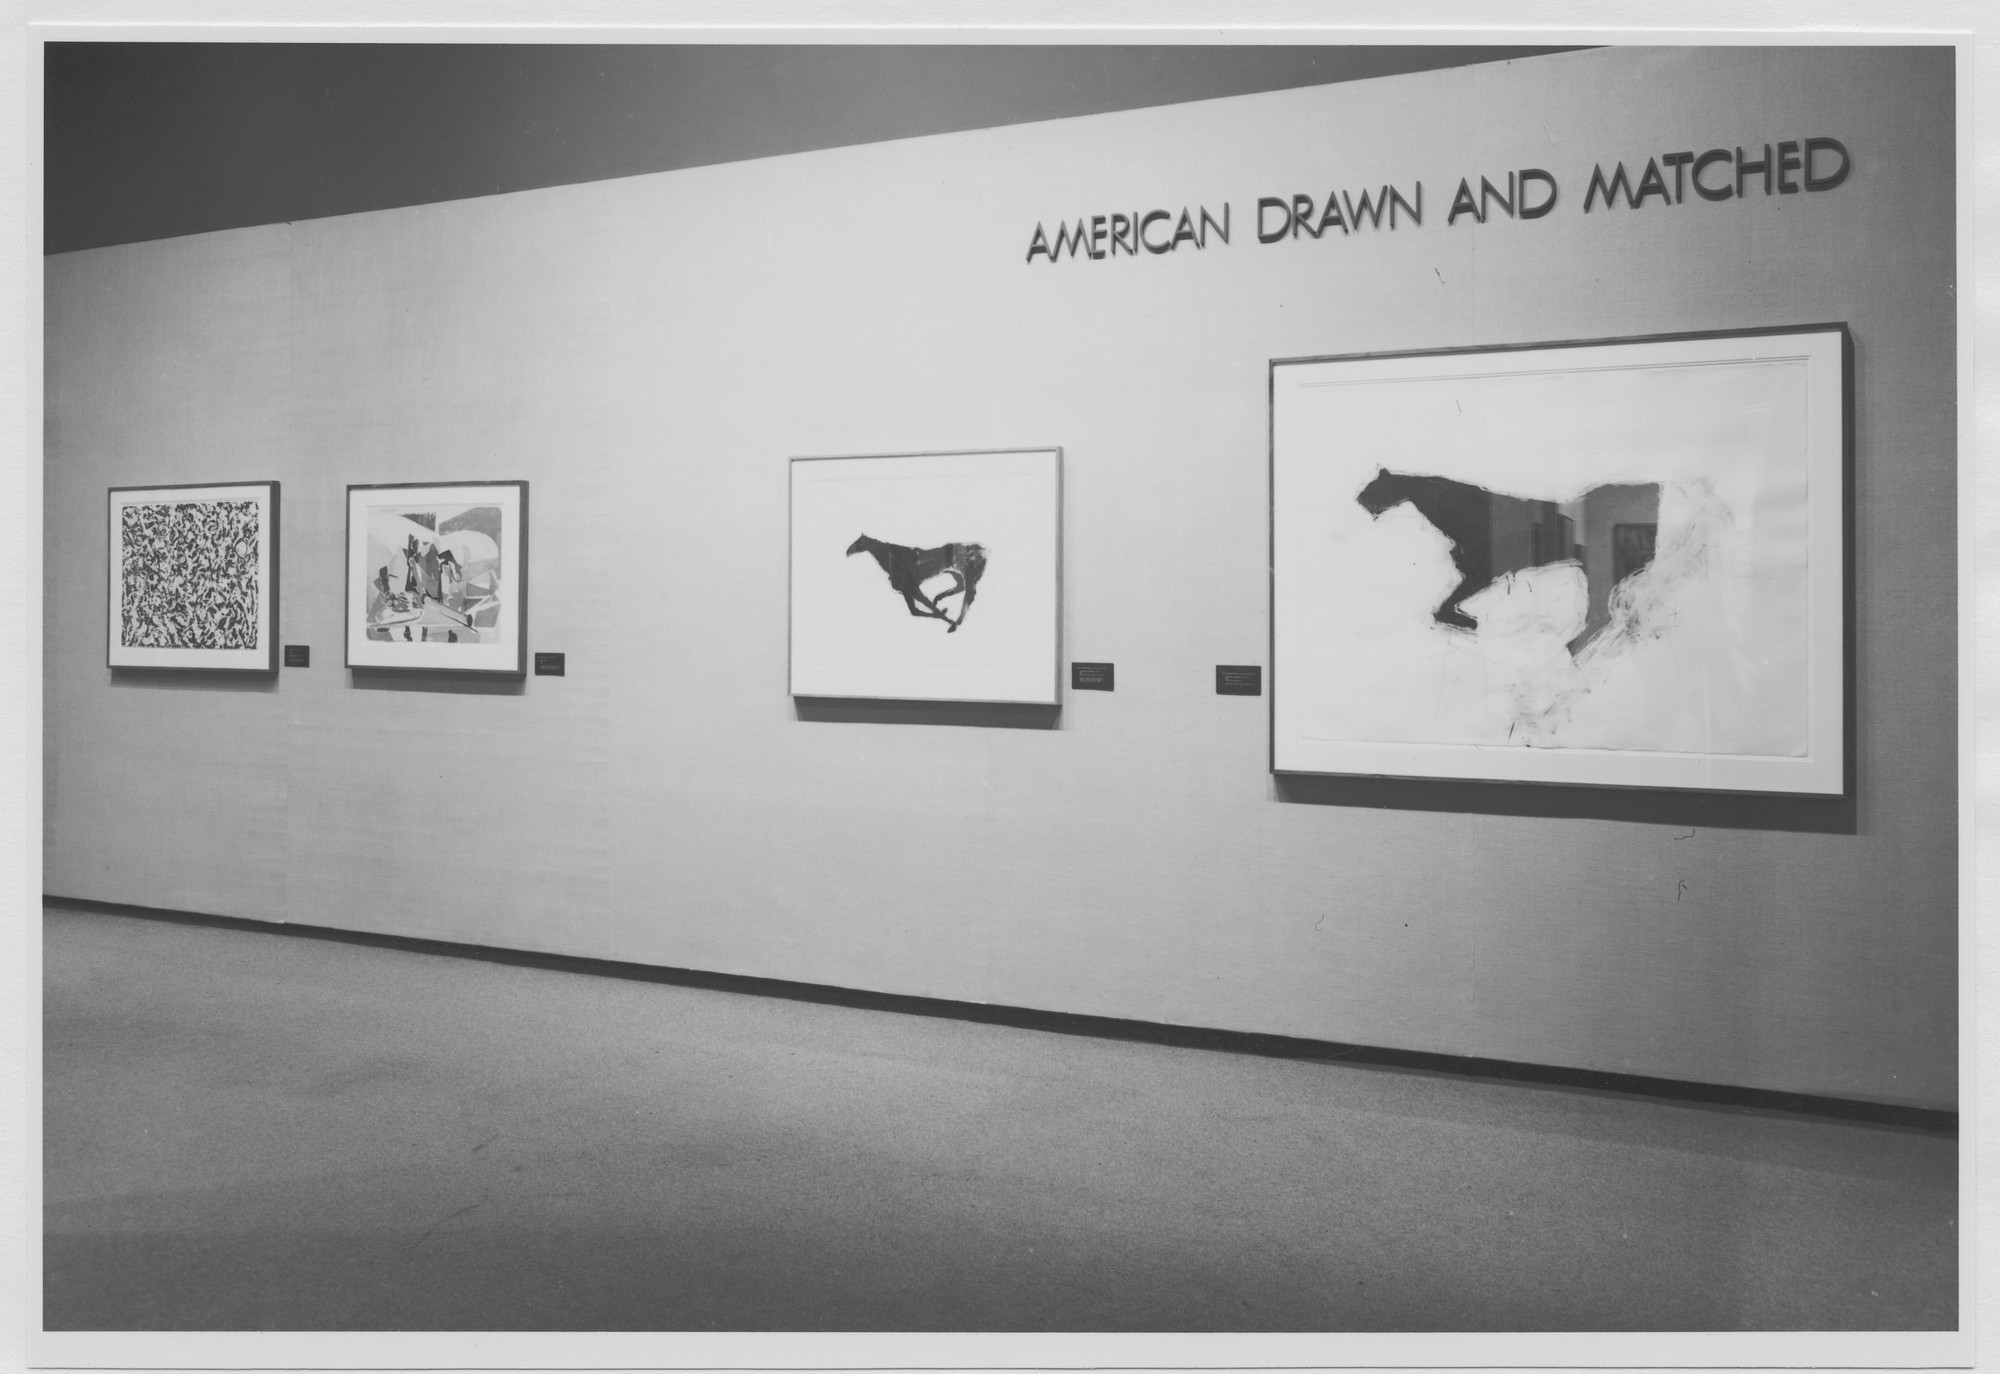 "Installation view of the exhibition, ""American Drawn and Matched."" September 20, 1977–December 4, 1977. Photographic Archive. The Museum of Modern Art Archives, New York. IN1186.1. Photograph by Katherine Keller."